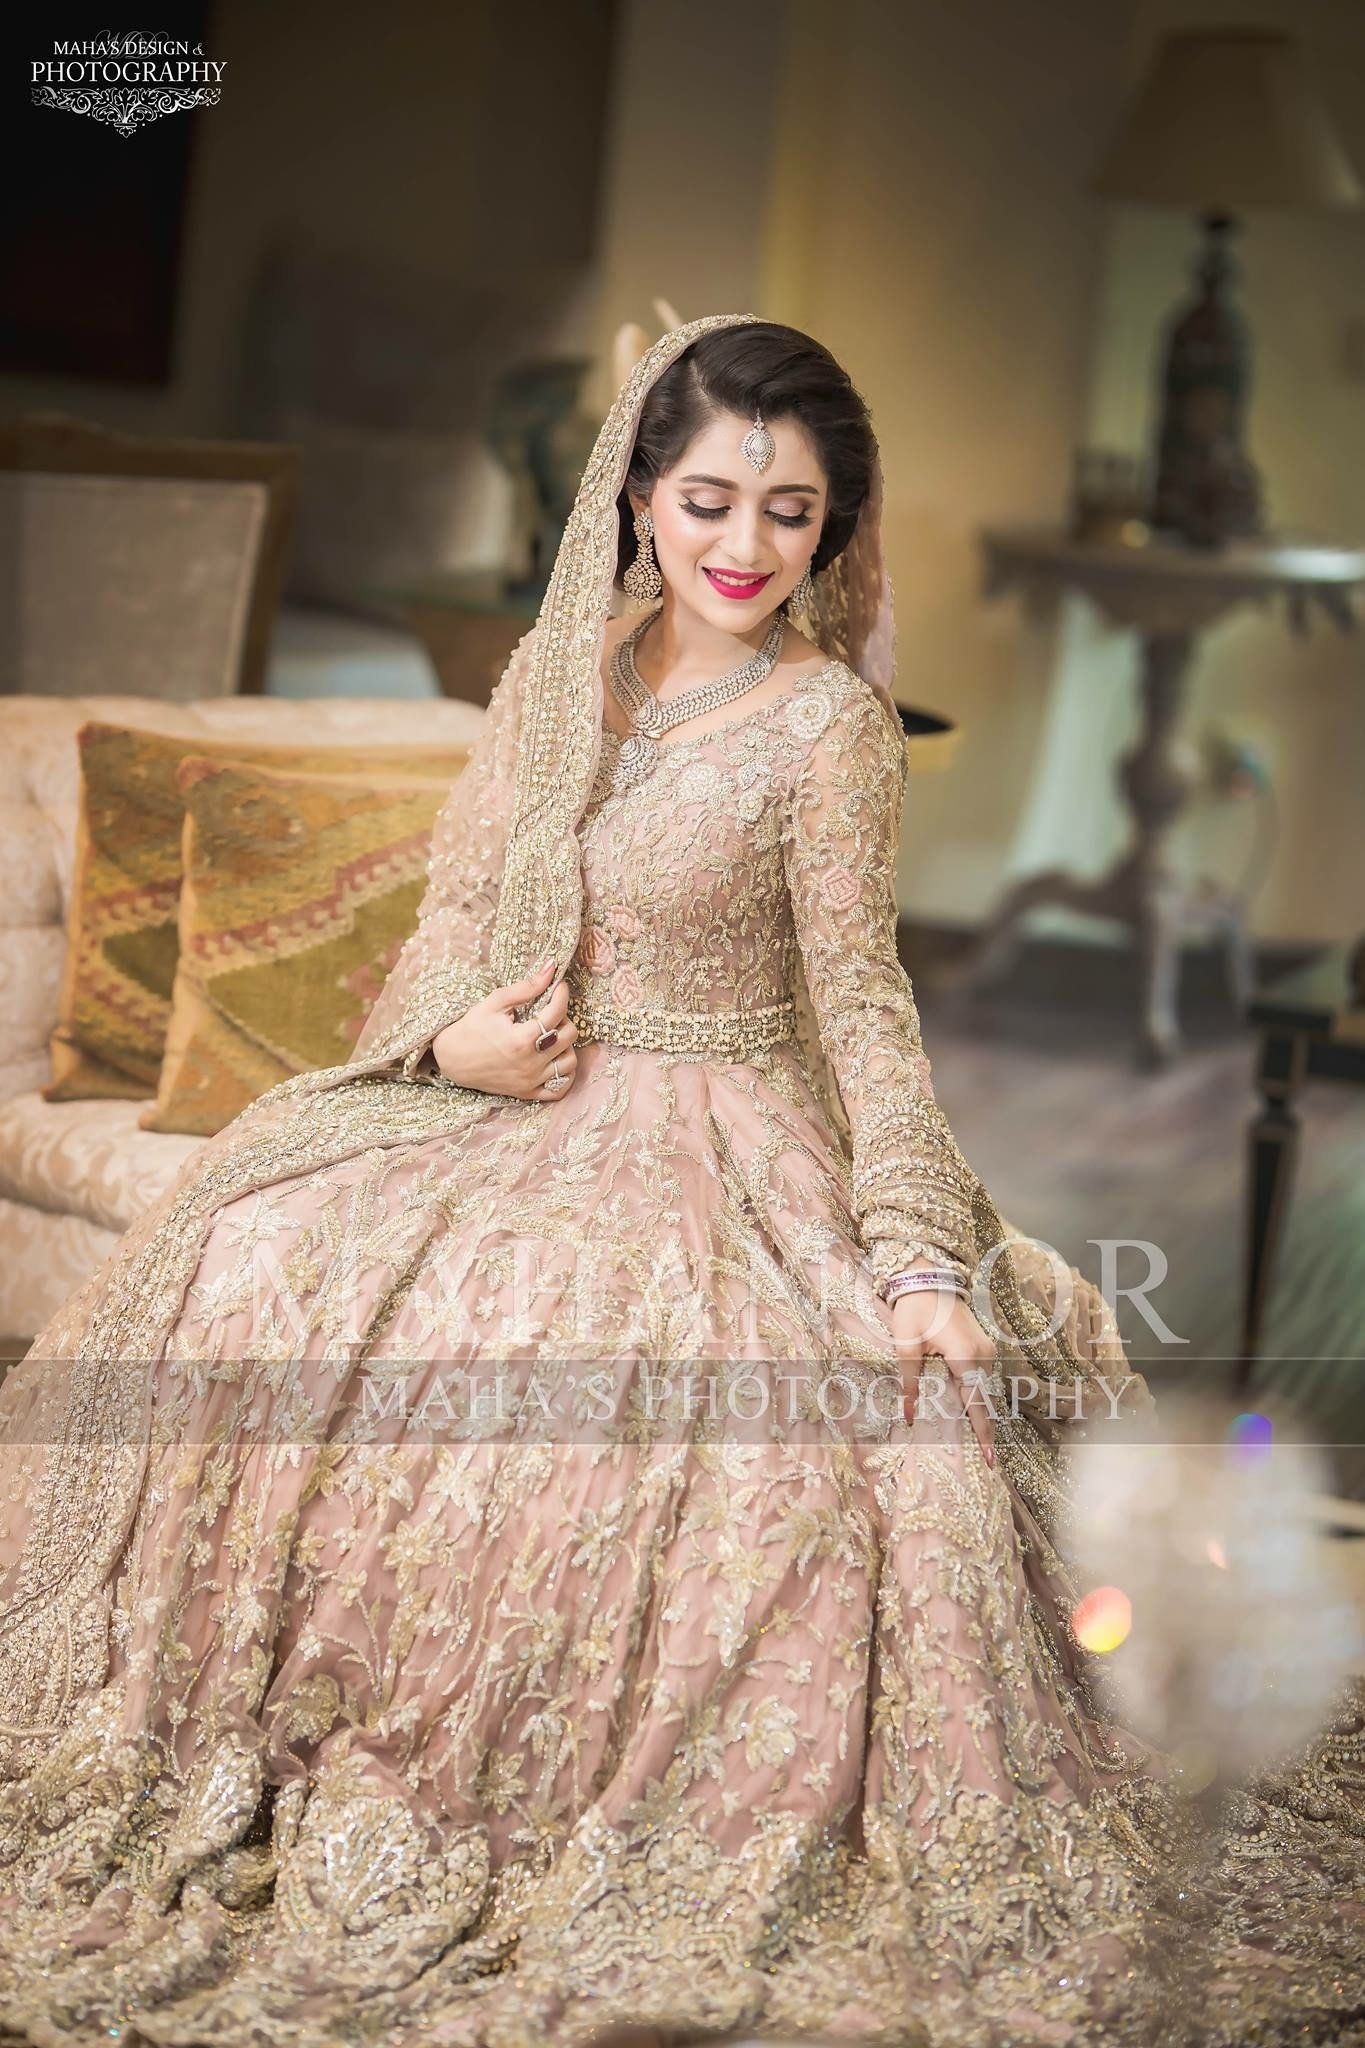 ab6c7cbc31 Pakistani Walima Bridal Dress In Pastel Pink Color Model# B 1658 in ...